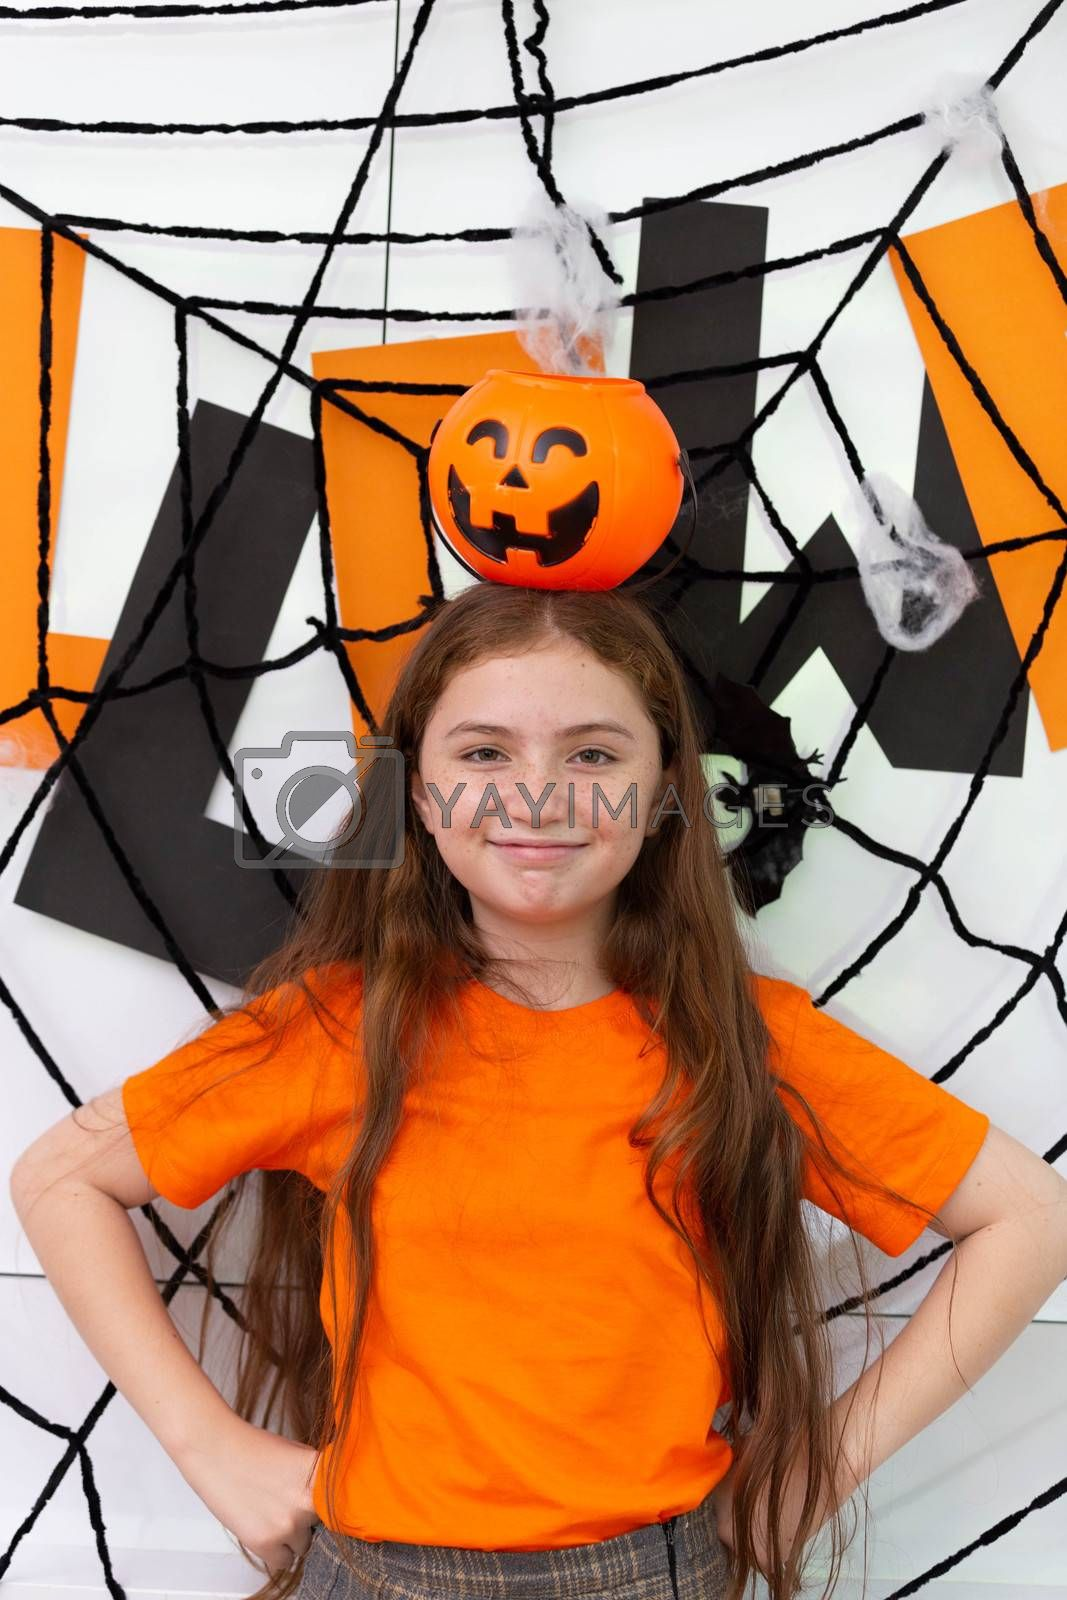 Happy Halloween, a girl enjoy the party in decorated house